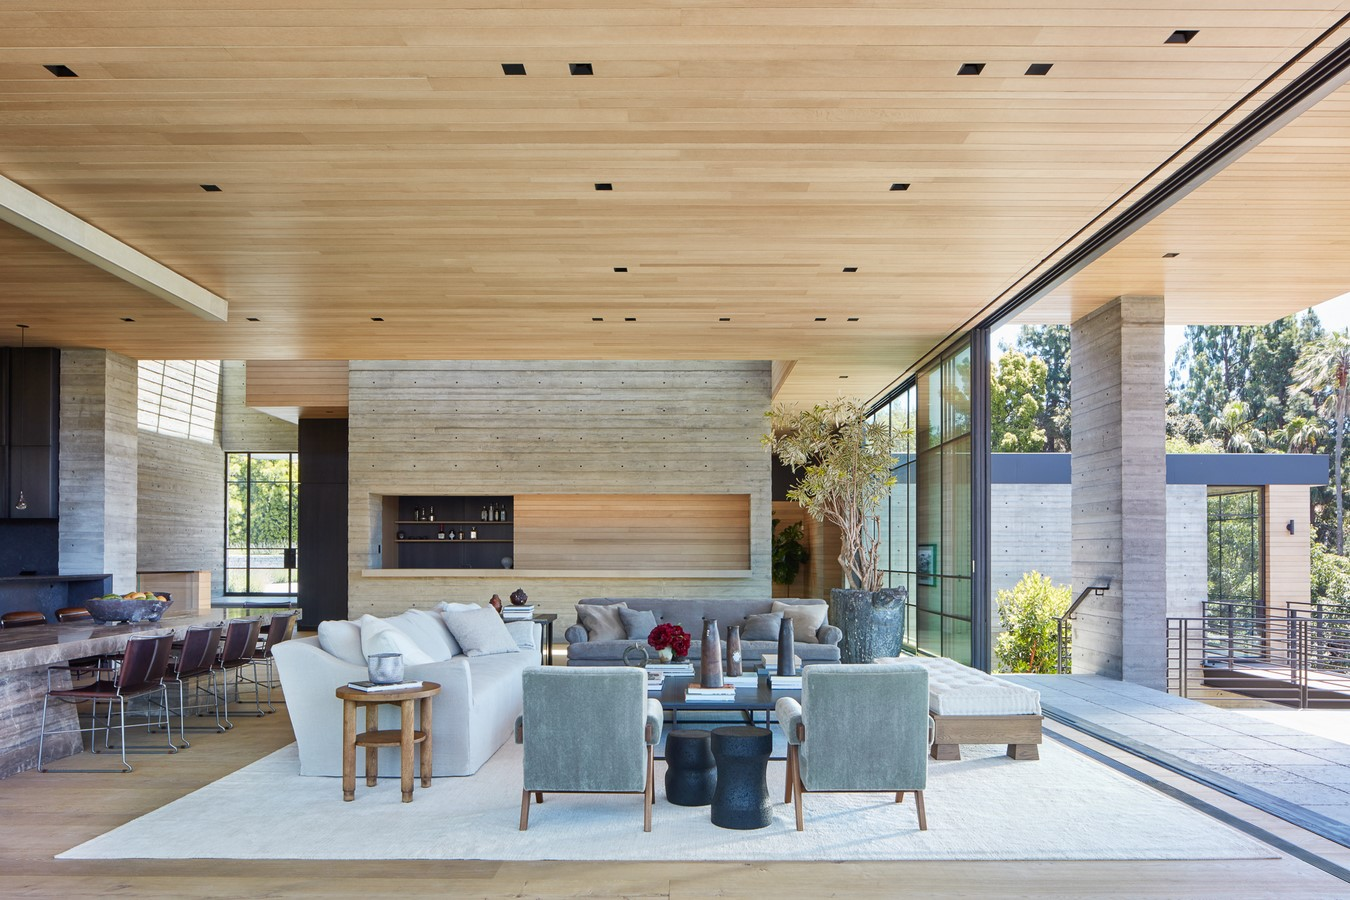 A Hillside House for Healthy Living By Christy Wolfe - Sheet3